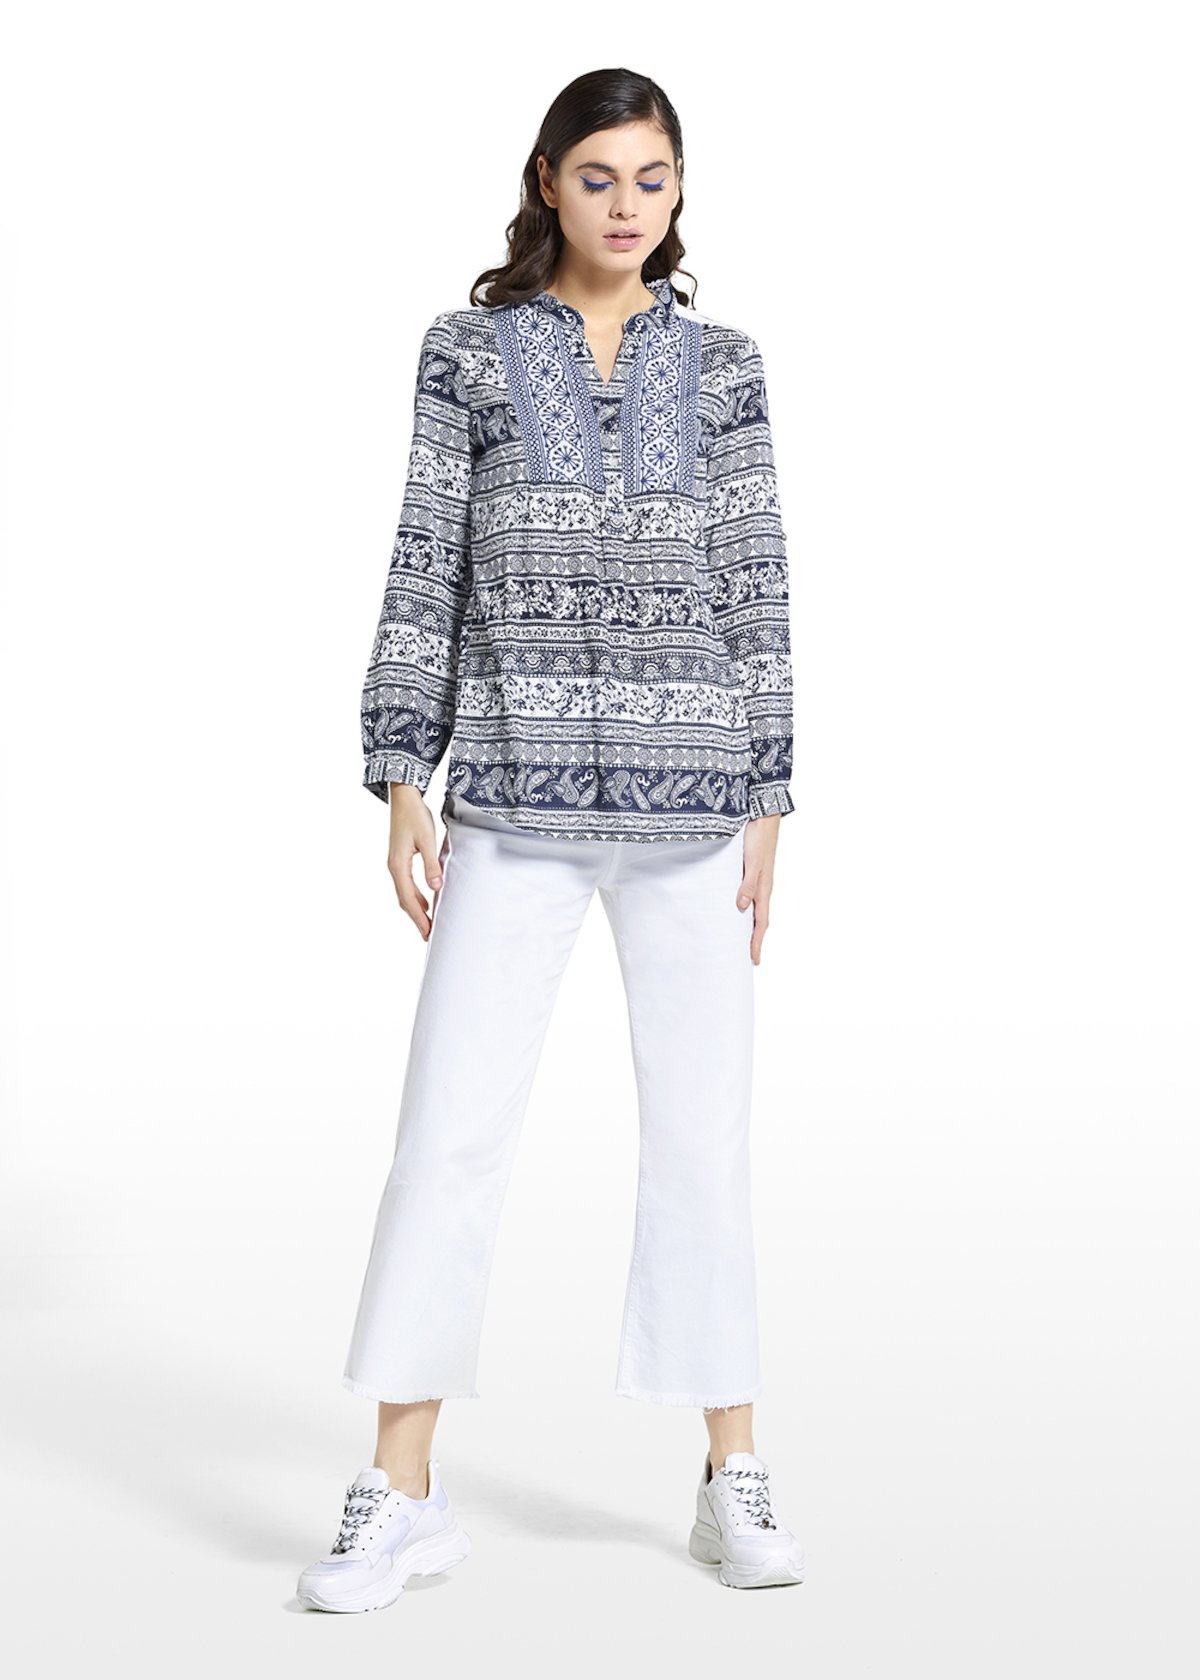 Cherys fantasy blouse with paisley pattern and V-neck - Blue / White Fantasia - Woman - Category image